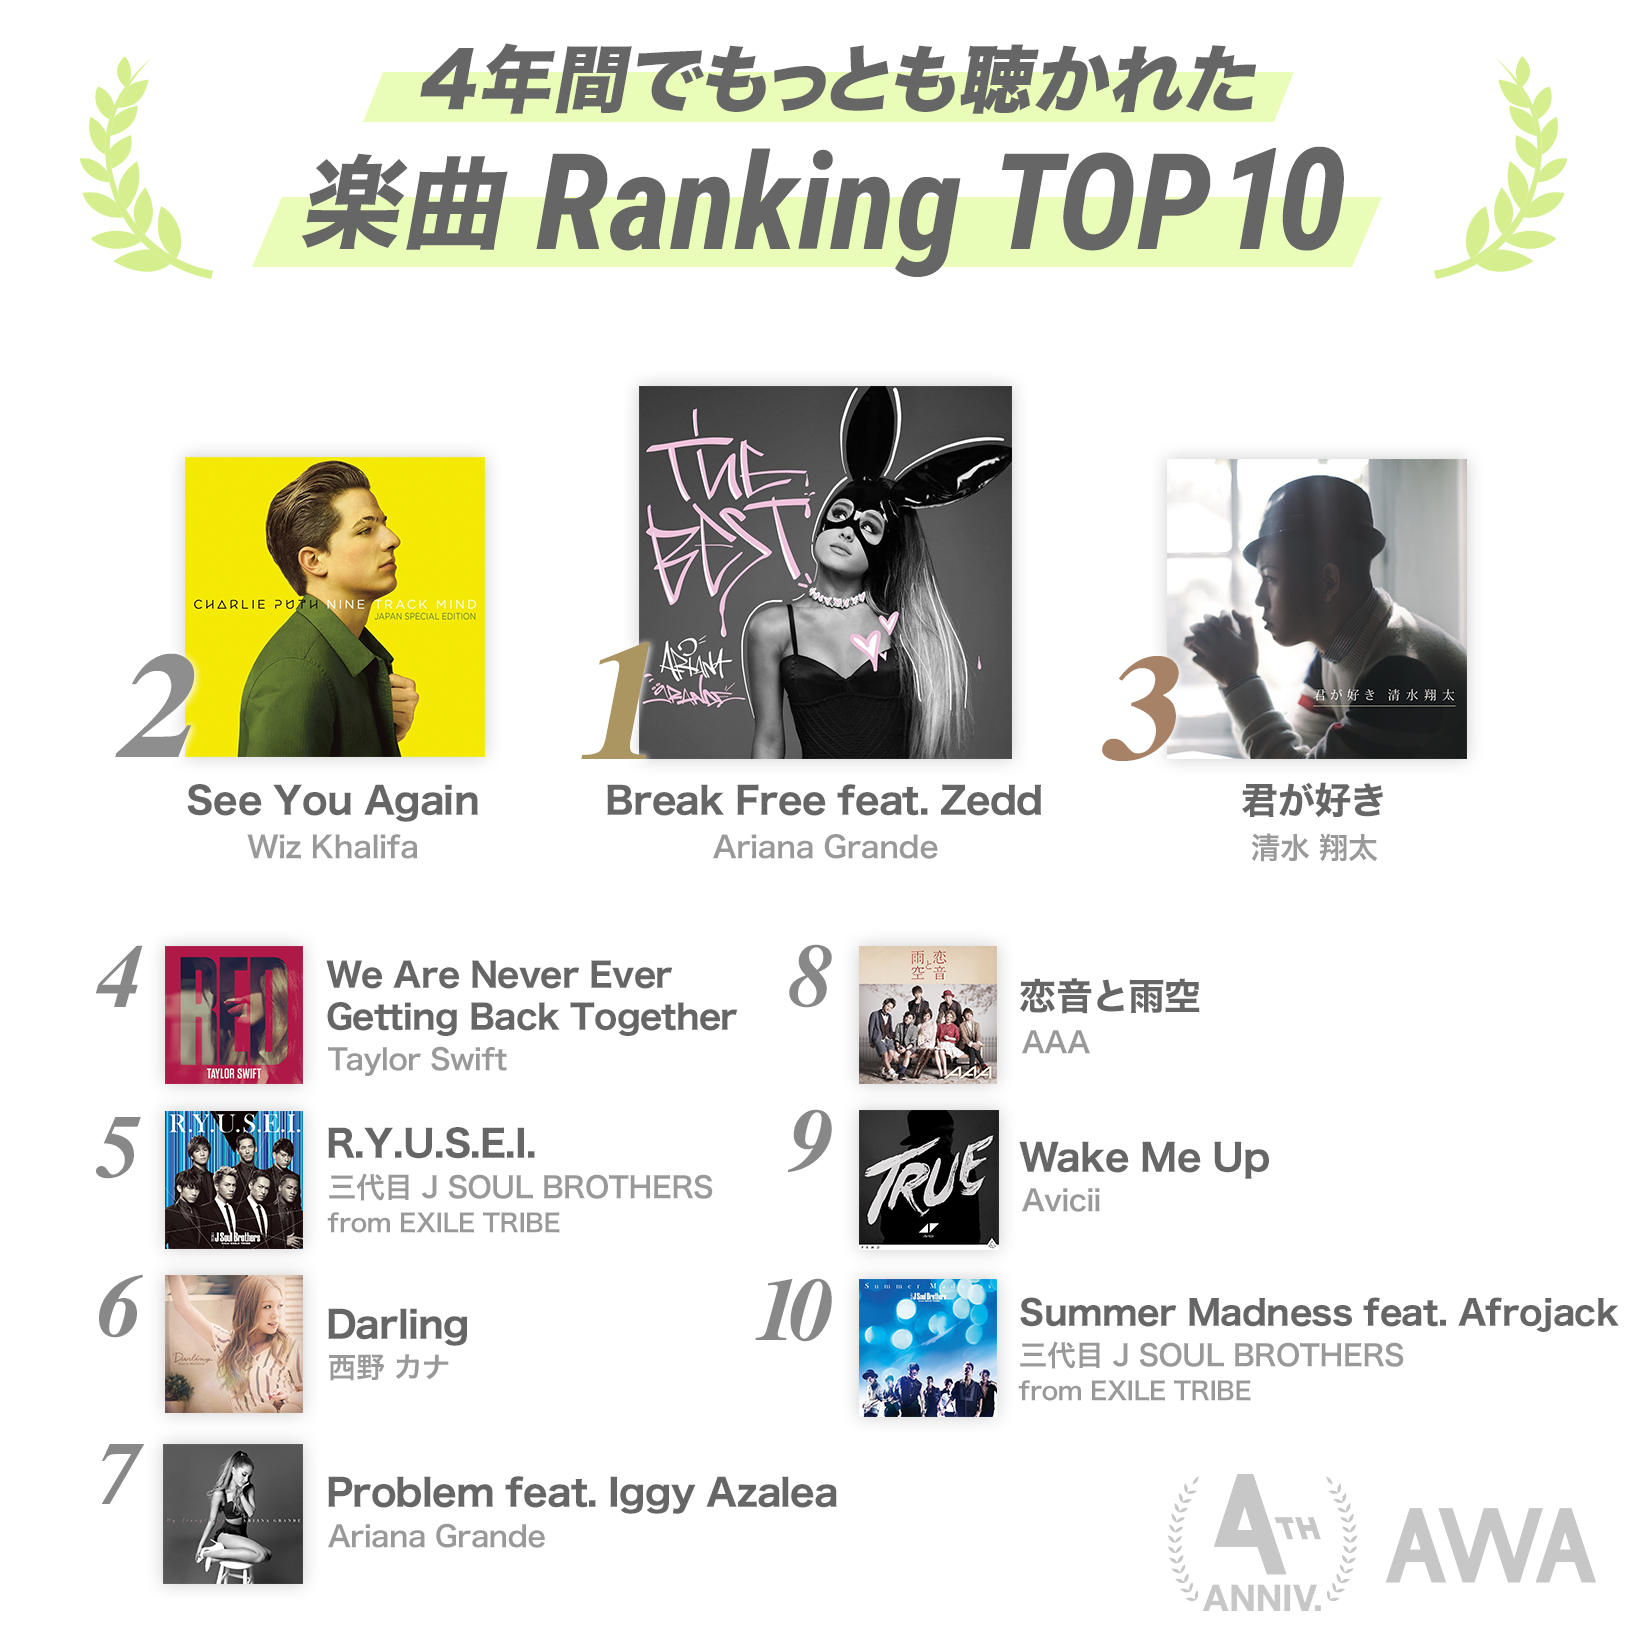 20190527_4thAnv_Ranking_01BestTrack.png